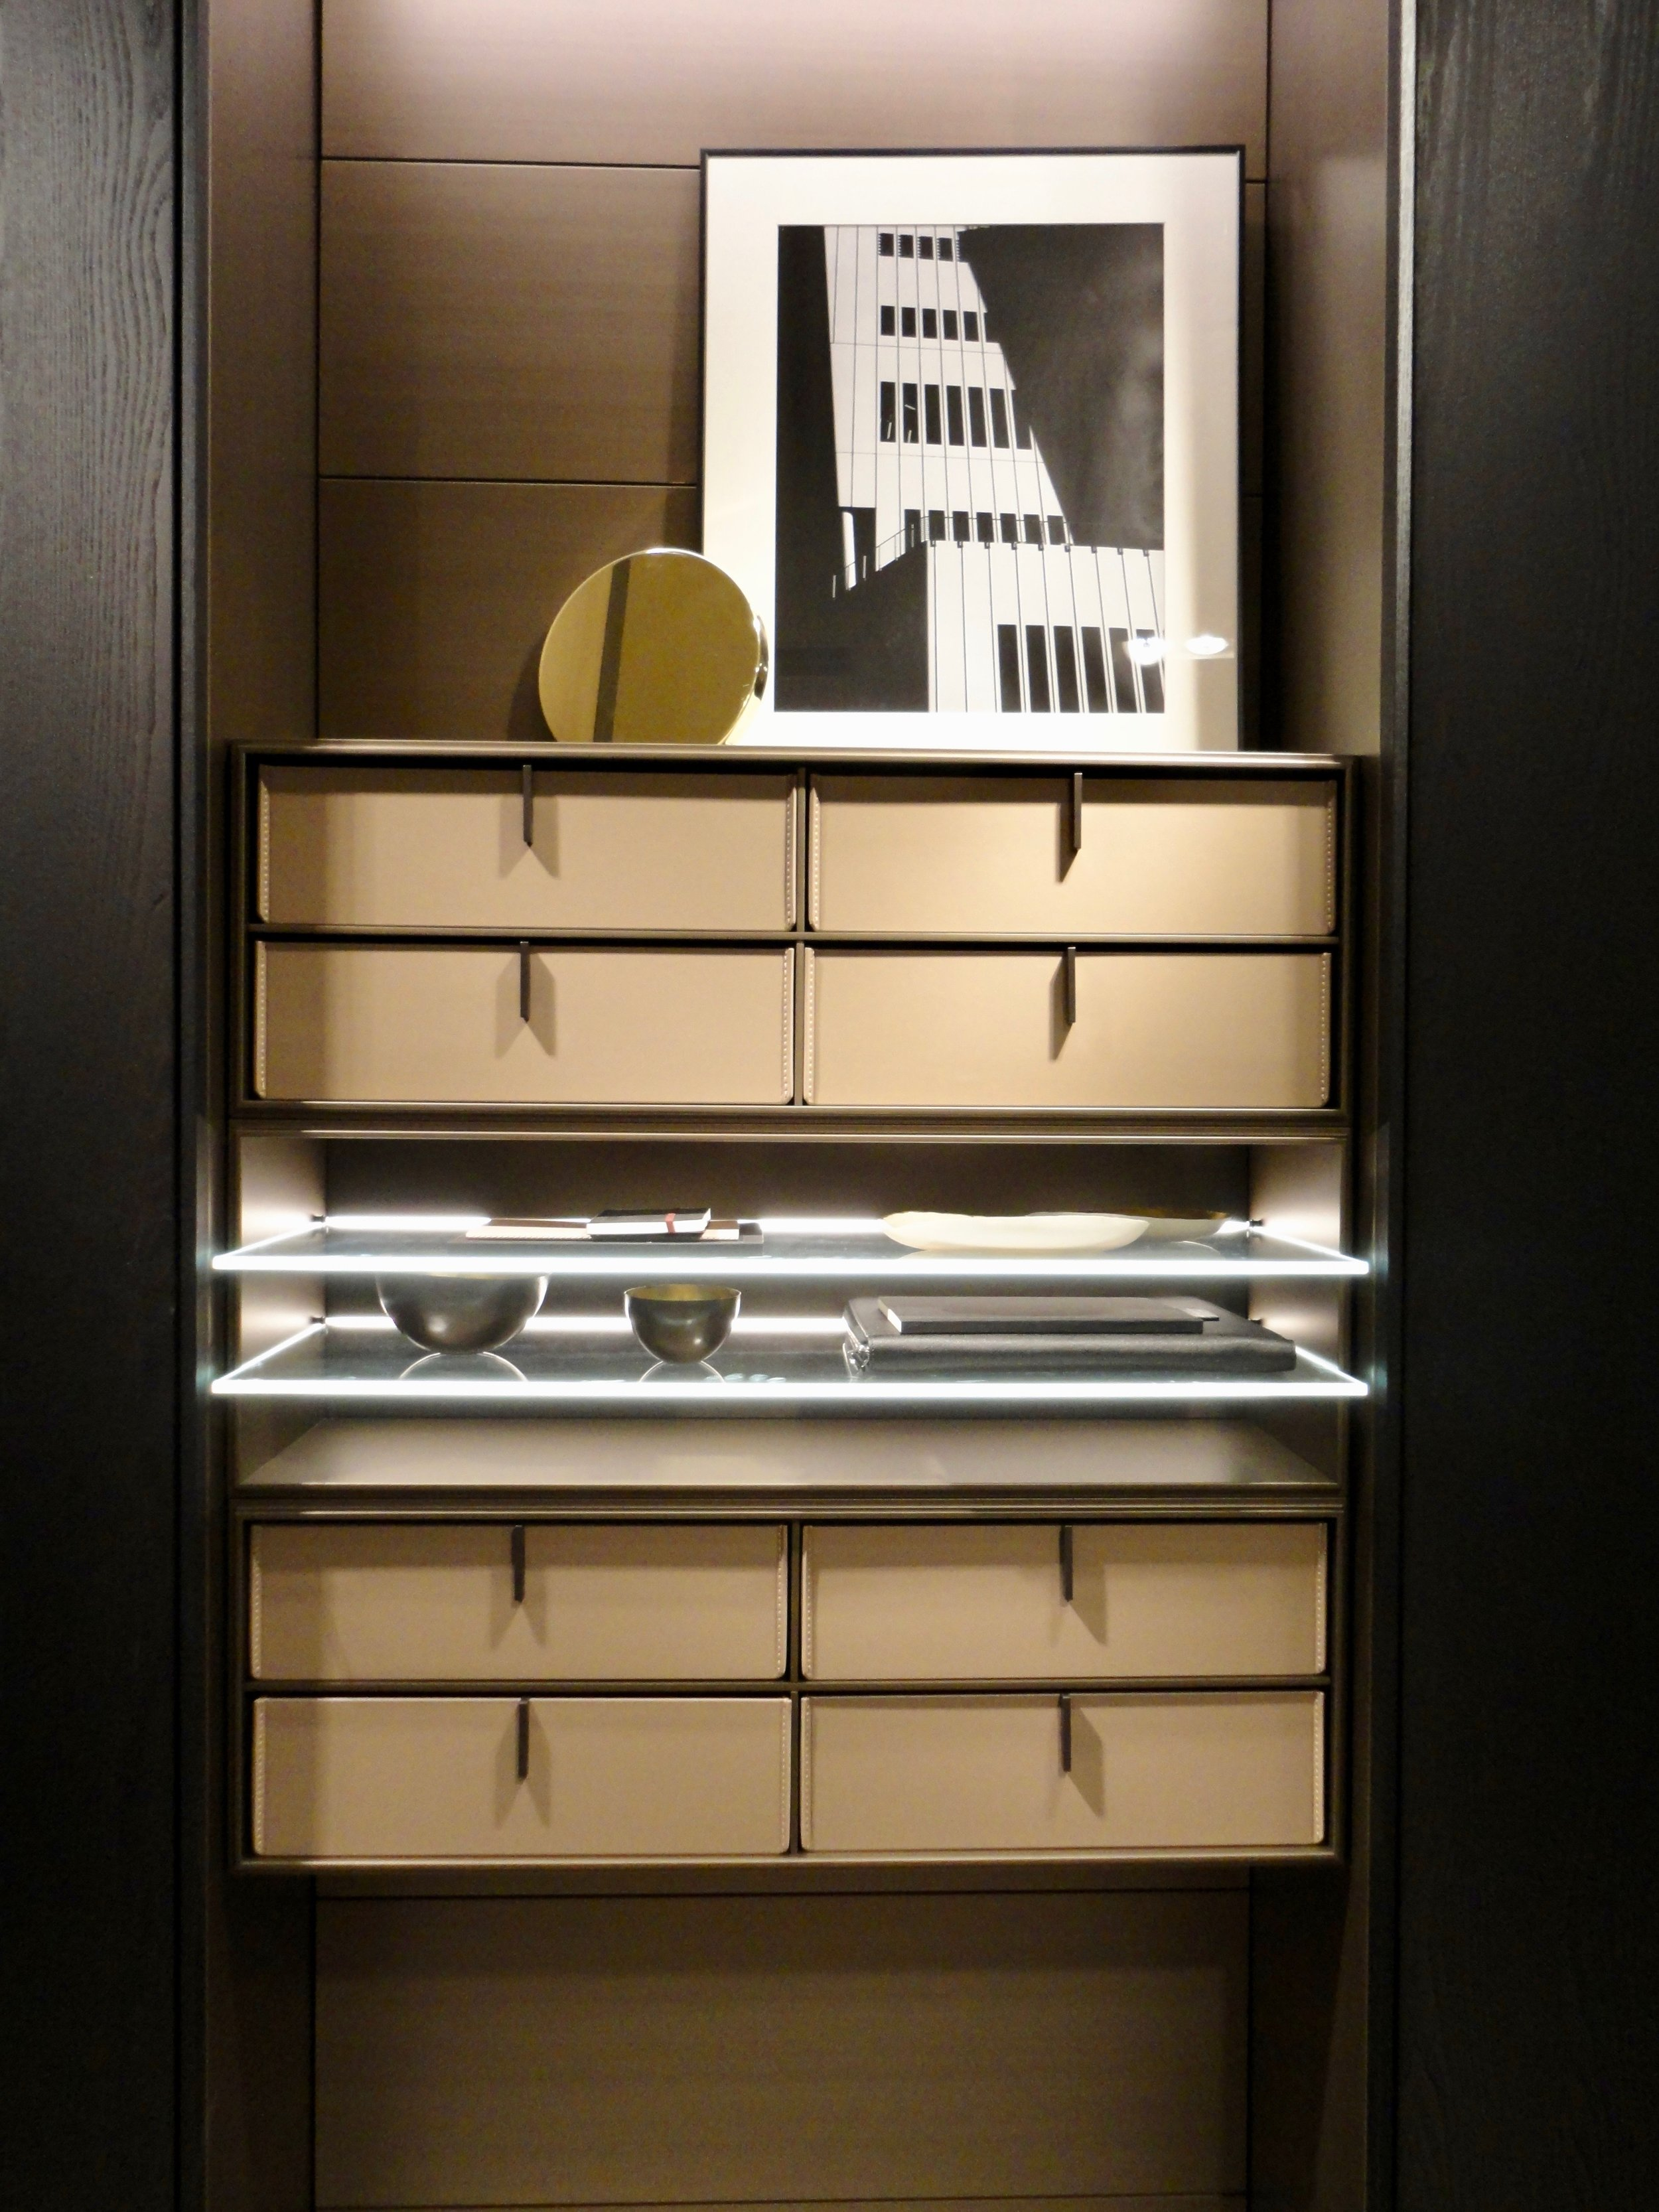 Leather drawers to an open robe display section